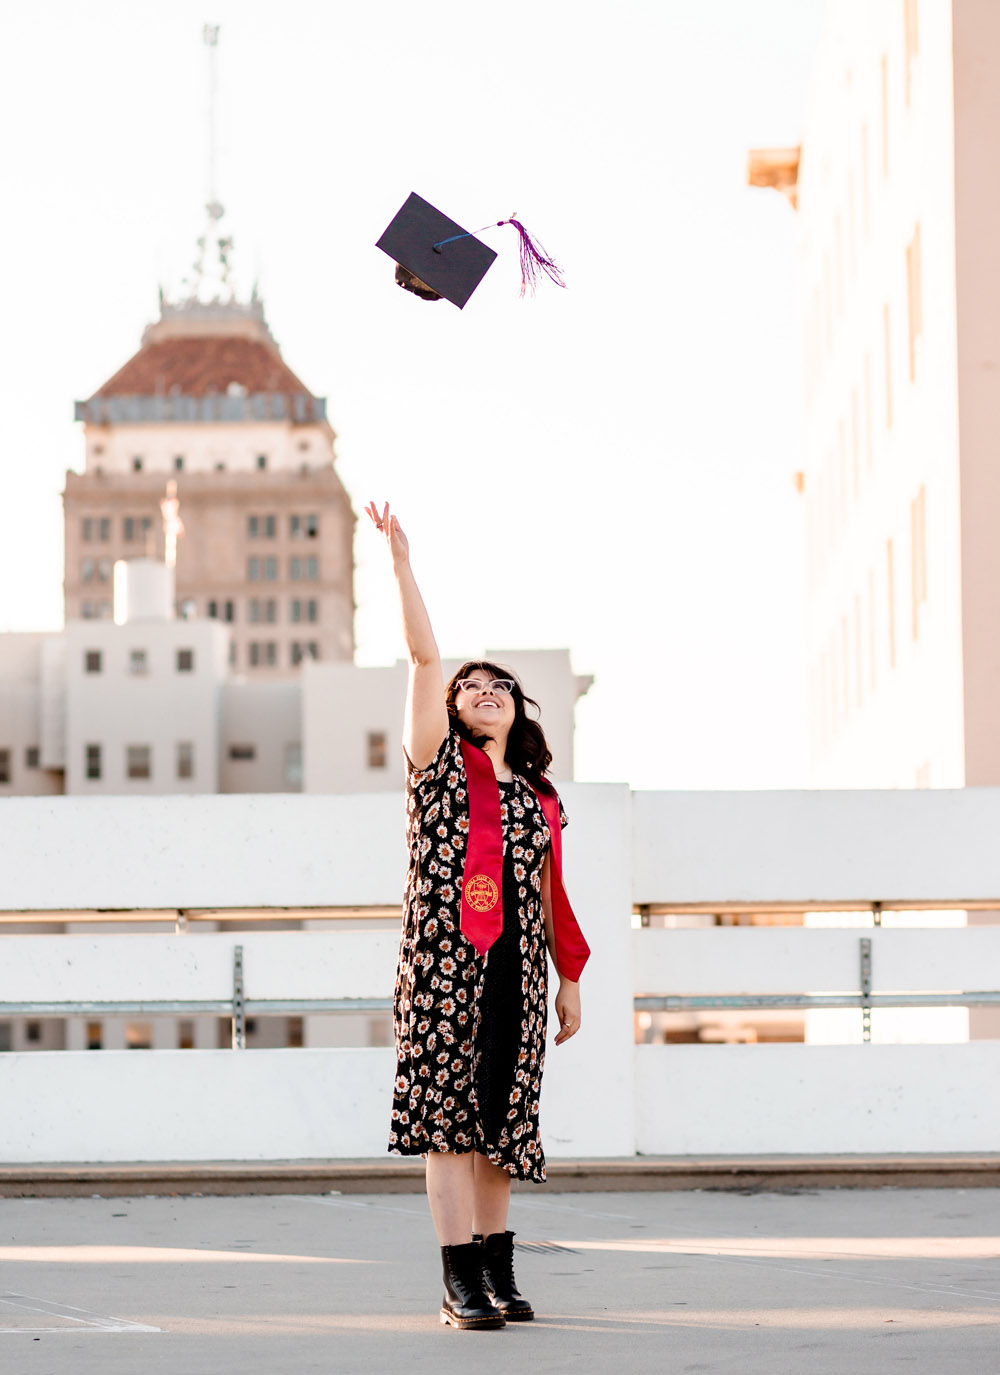 Justine Esparza, Political Science and Women's Studies, 2020.